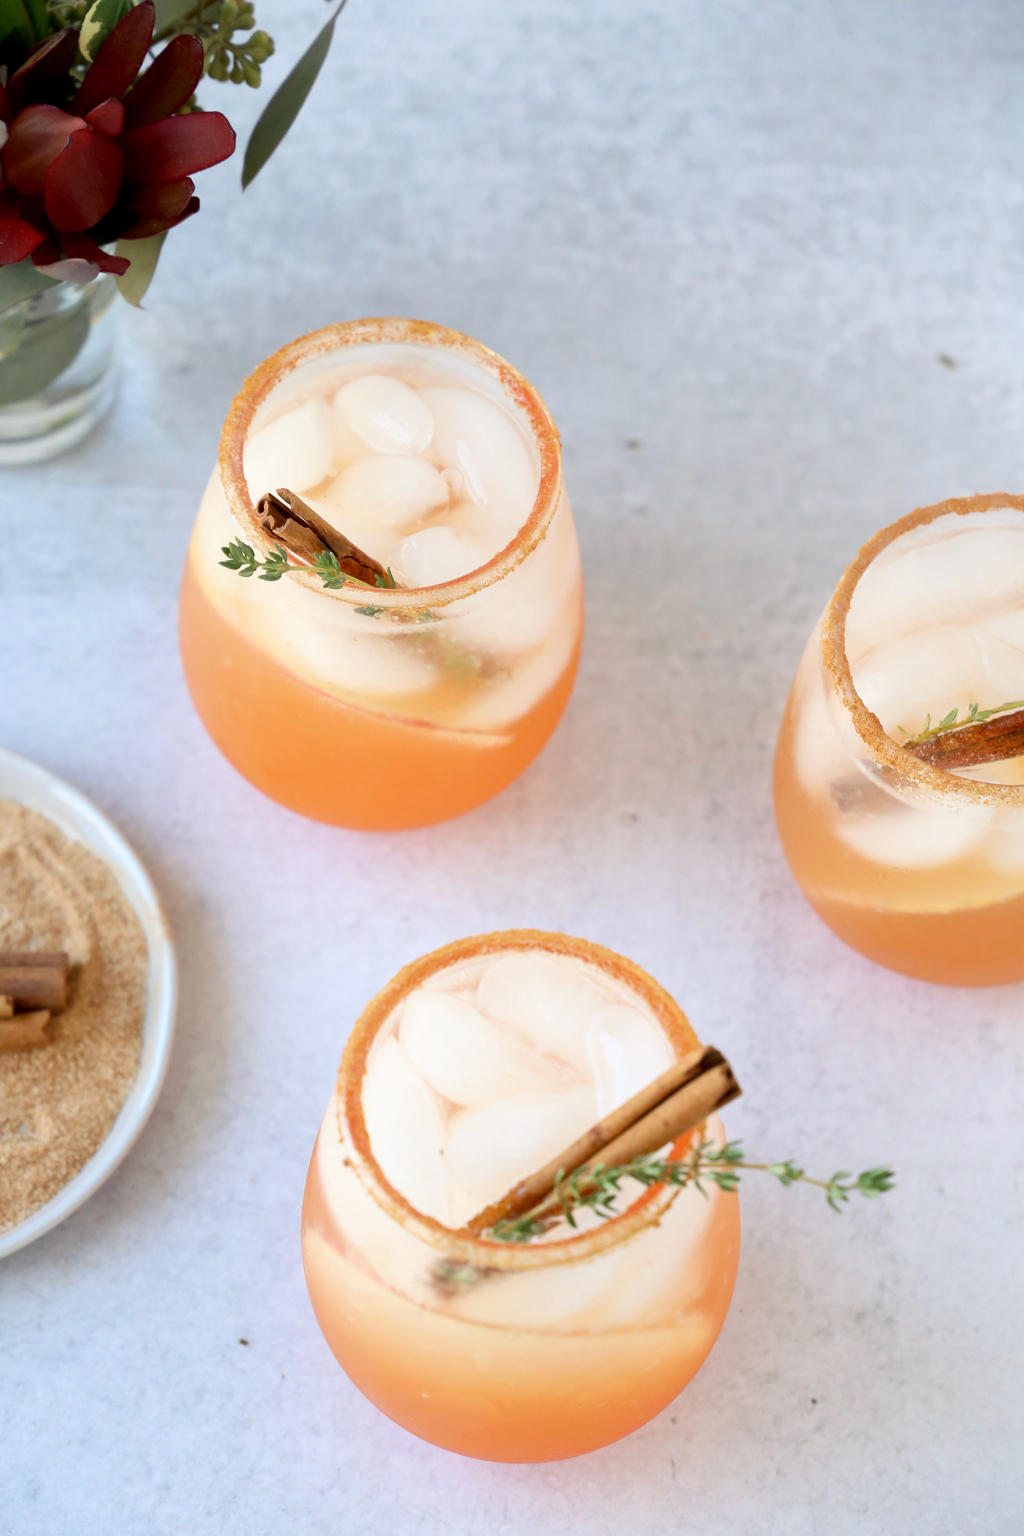 an overhead view of three apple cider aperol spritz cocktails